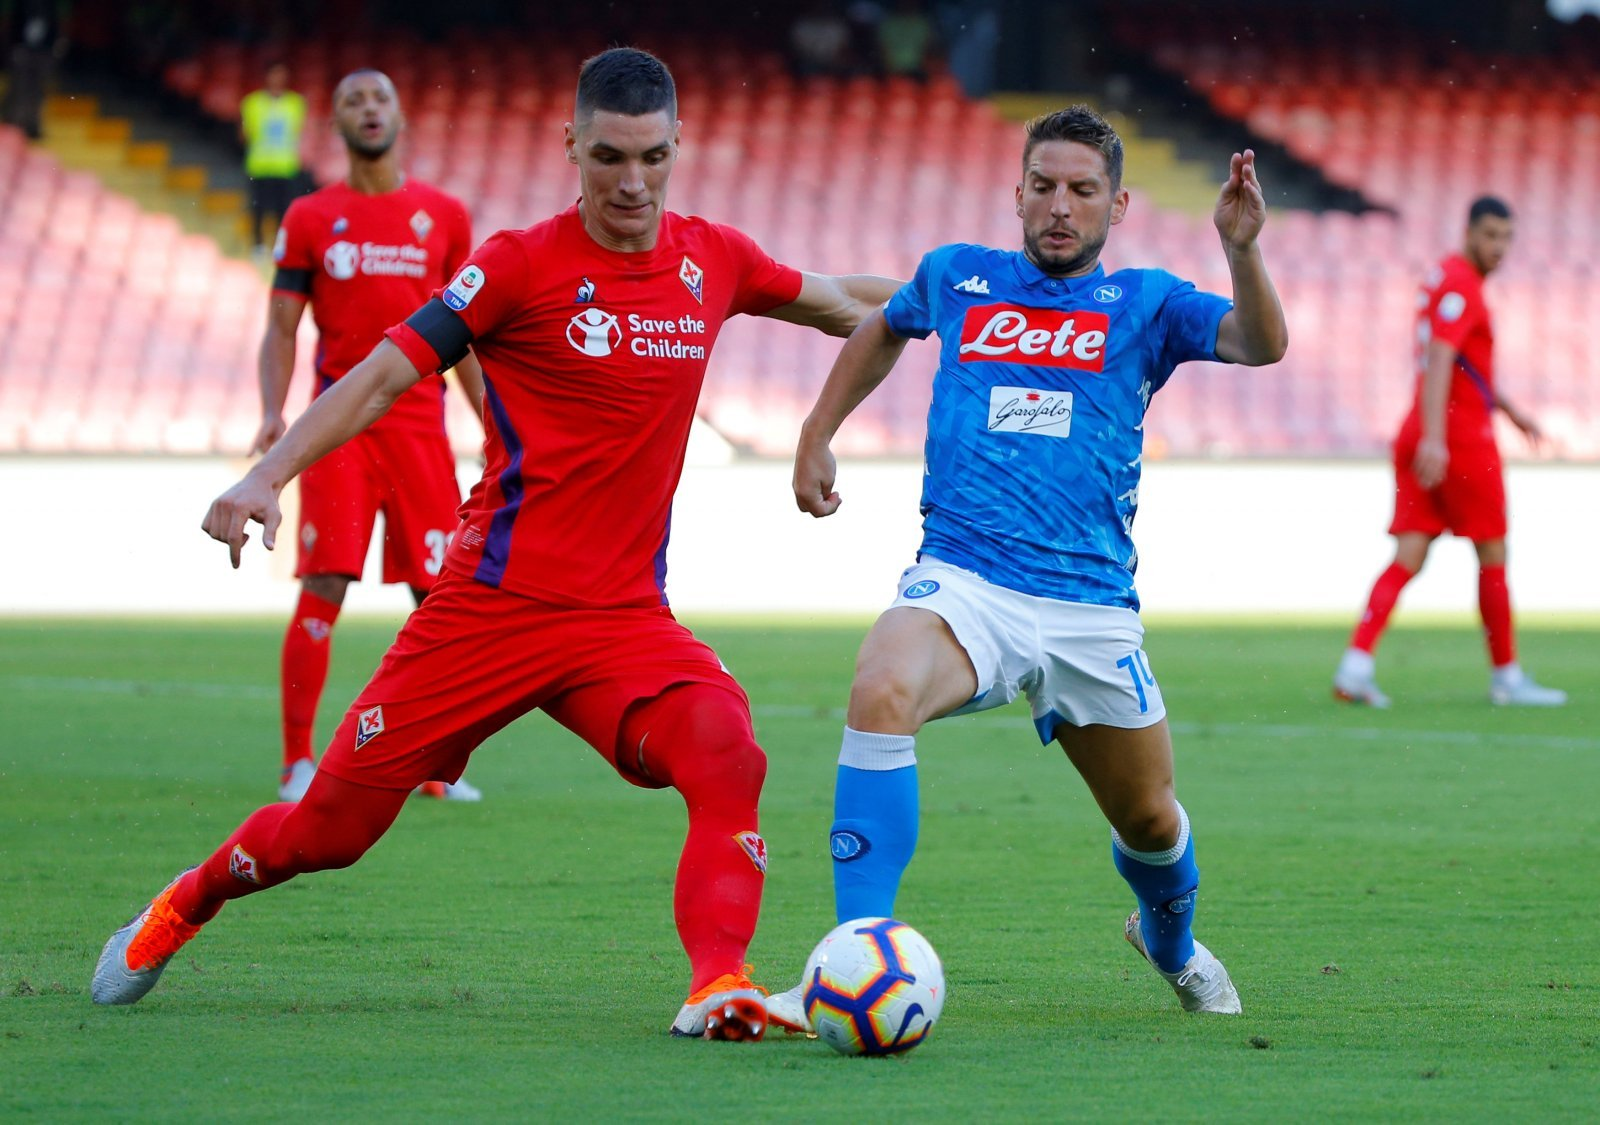 Nikola Milenkovic would be a very strong addition for Manchester United